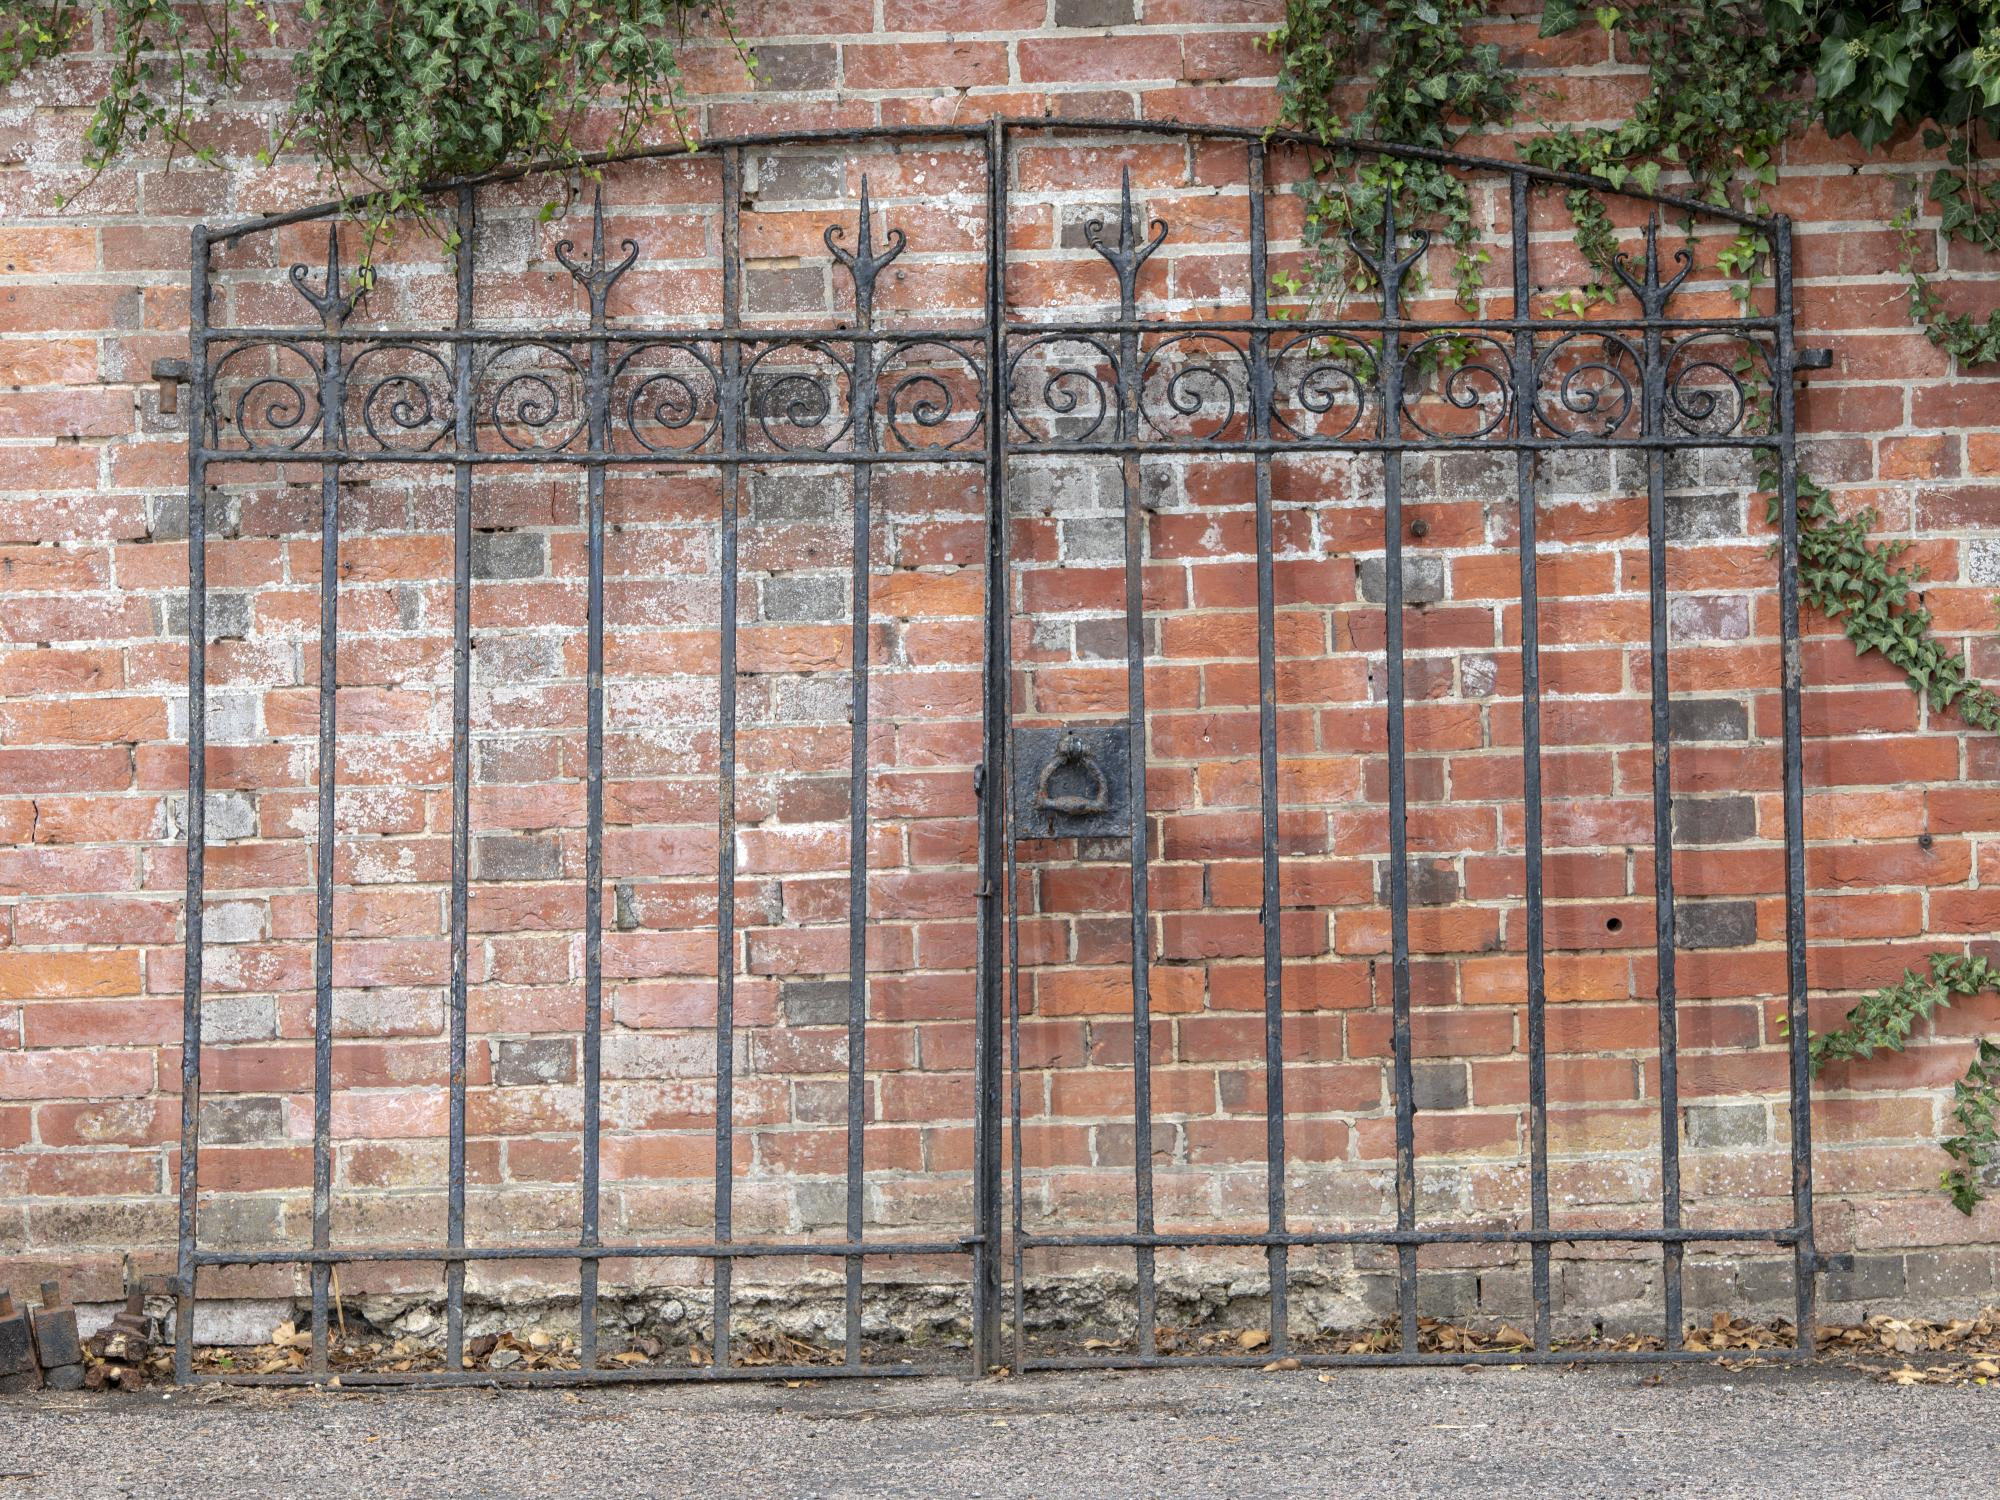 Lot 200 - Gates: A pair of wrought iron gates, late 19th century, 180cm high by 224cm wide